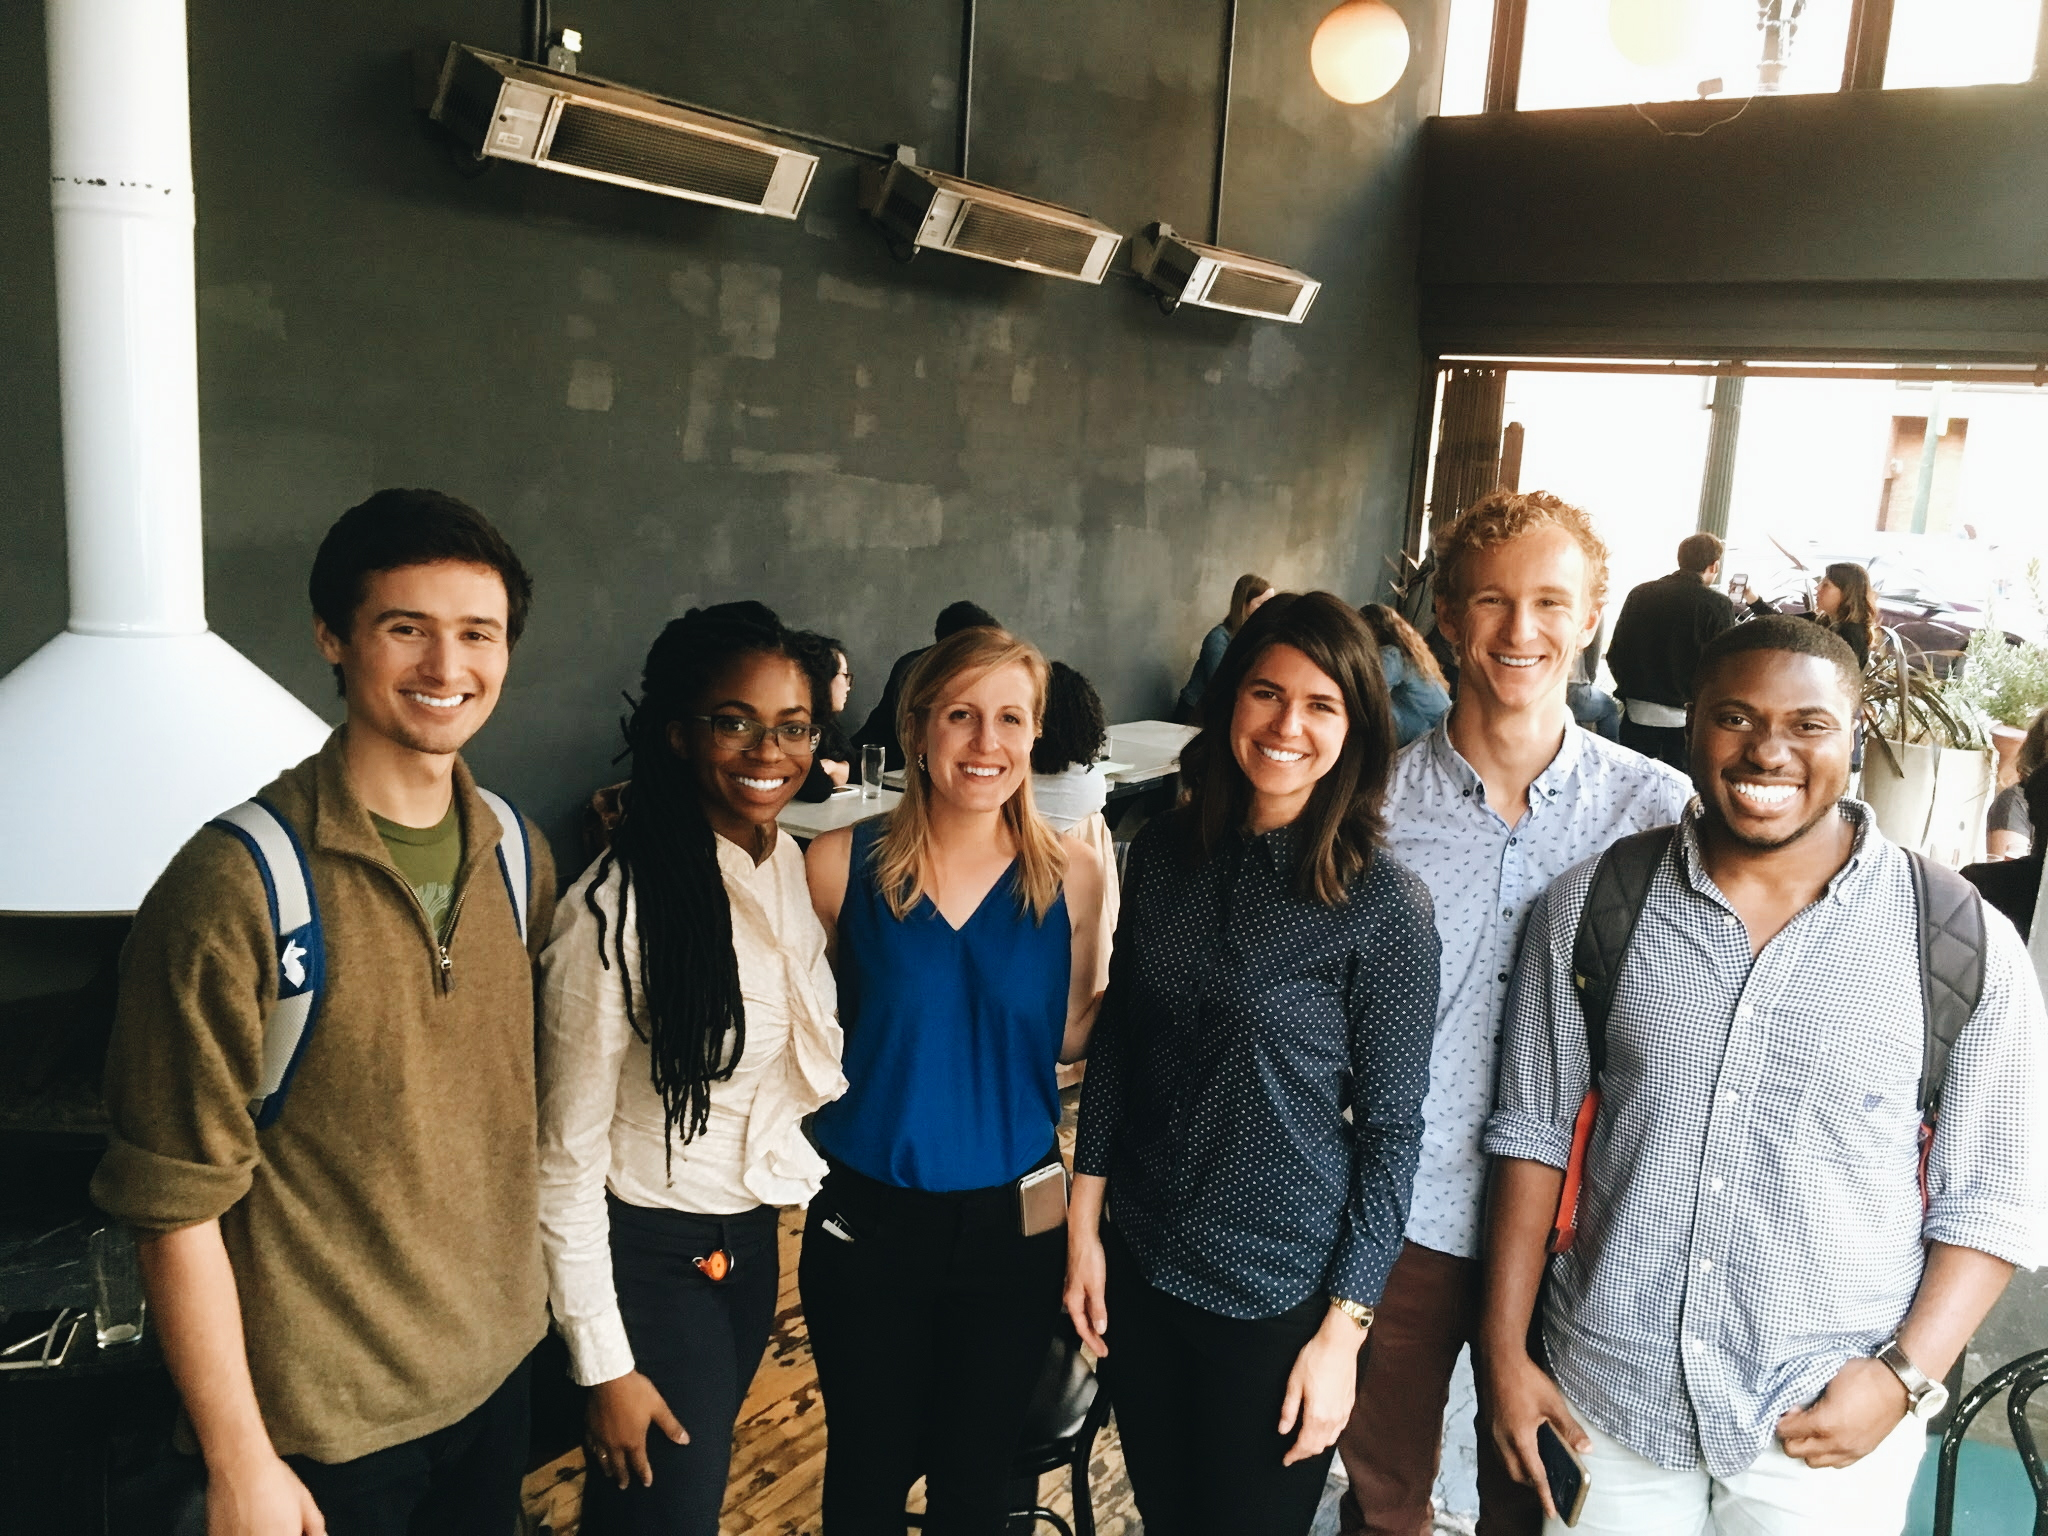 Pictured L-R: Cole Stites-Clayton (Solstice CTO), Ugwem Eneyo (Solstice CEO), Emily Fritze (Powerhouse Director of Marketing and Business Development), Emily Kirsch (Powerhouse Co-Founder & CEO), Tyler Davis (Solstice Software Engineer), Richard Mantey (Solstice Data Scientist Intern)